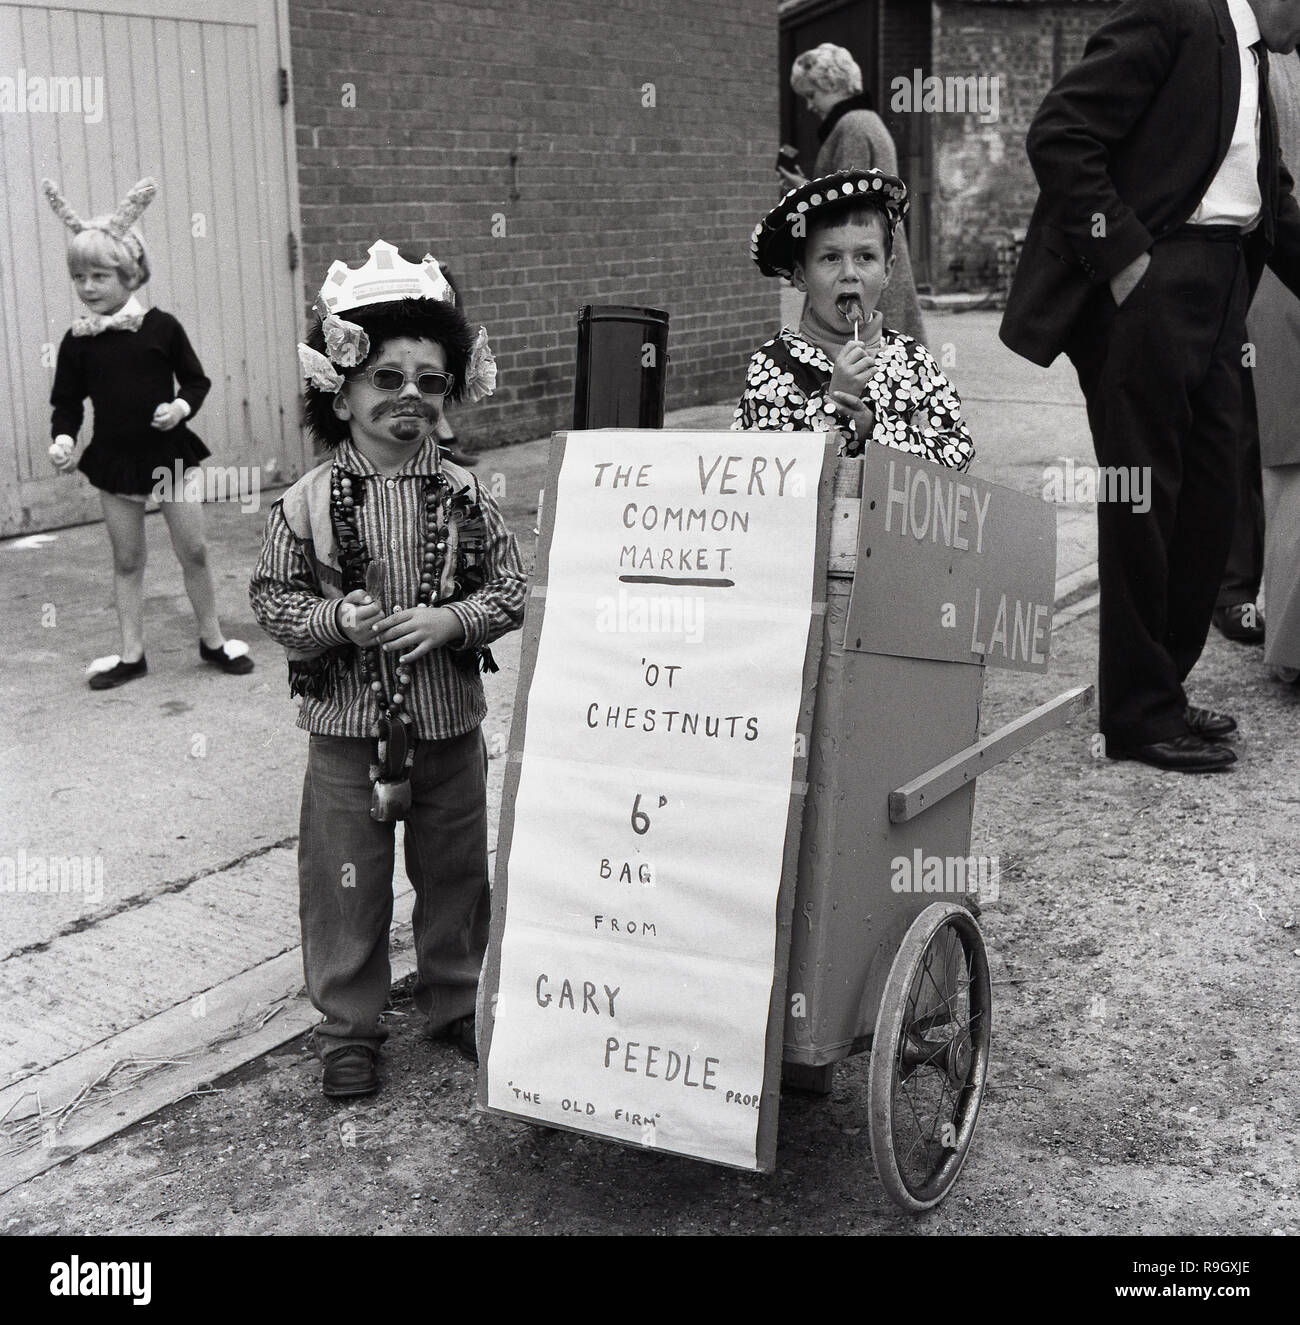 1967, historcial, two young boys in fancy dress costume - one as an East End of London Pearly King - selling chestnuts at 6D a bag from their small homemade cart in the street at the  Prestwood village fete. Stock Photo